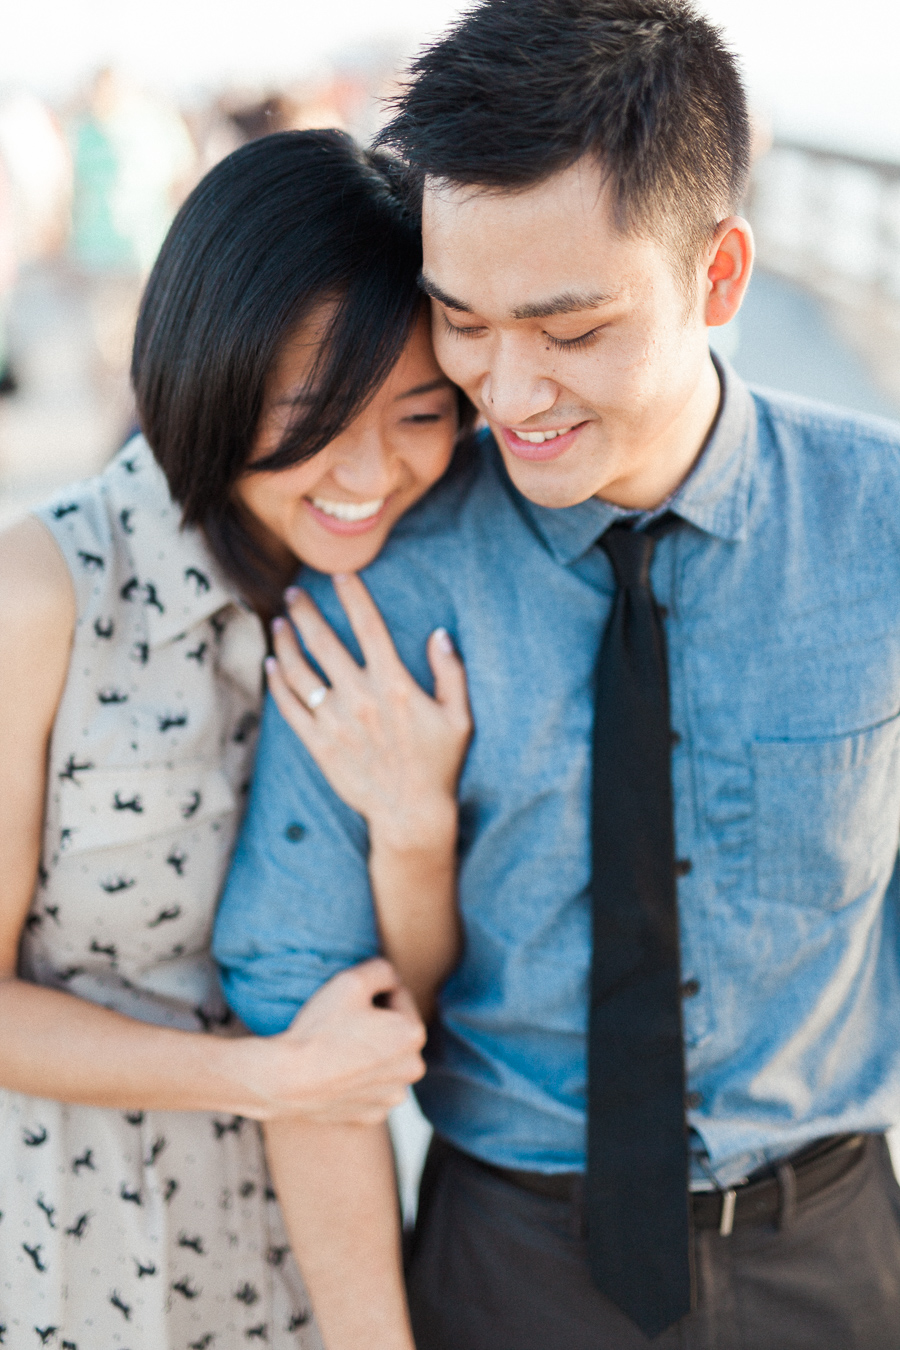 mike-thezier-photography-jeng-engagement-01.jpg